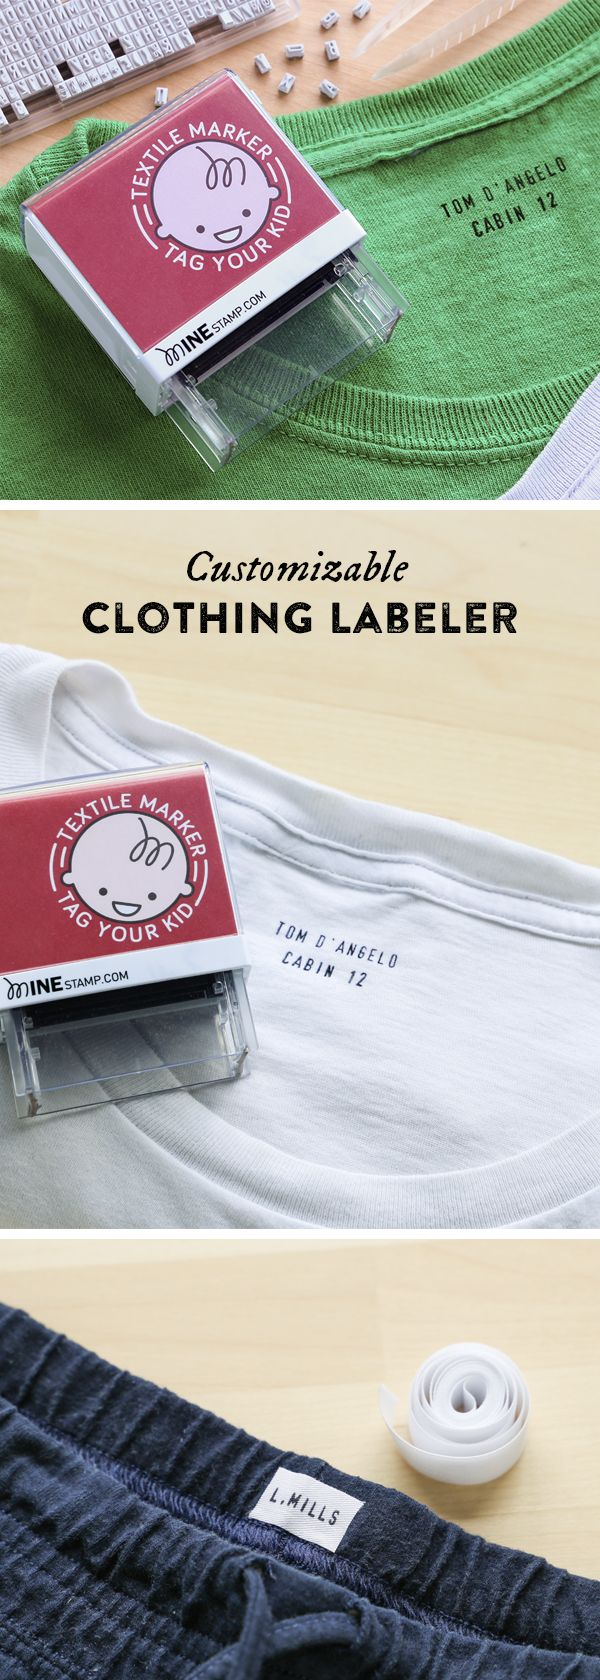 With one press, this customizable stamp labels clothes, backpacks, books, and more with wash-resistant ink.